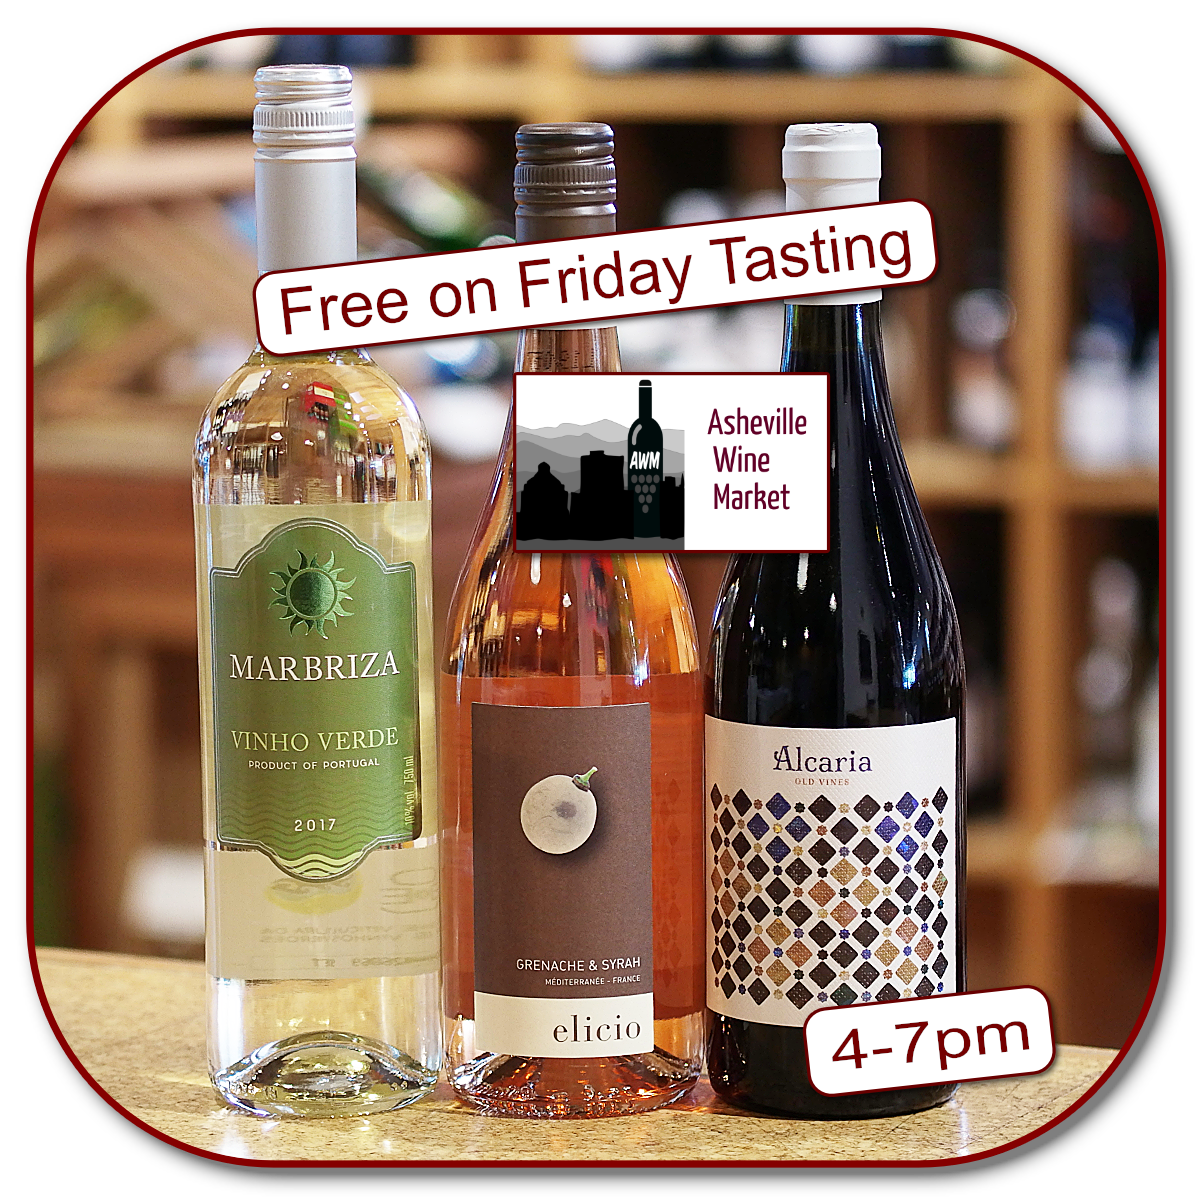 Taste 3 for free today 4-7pm